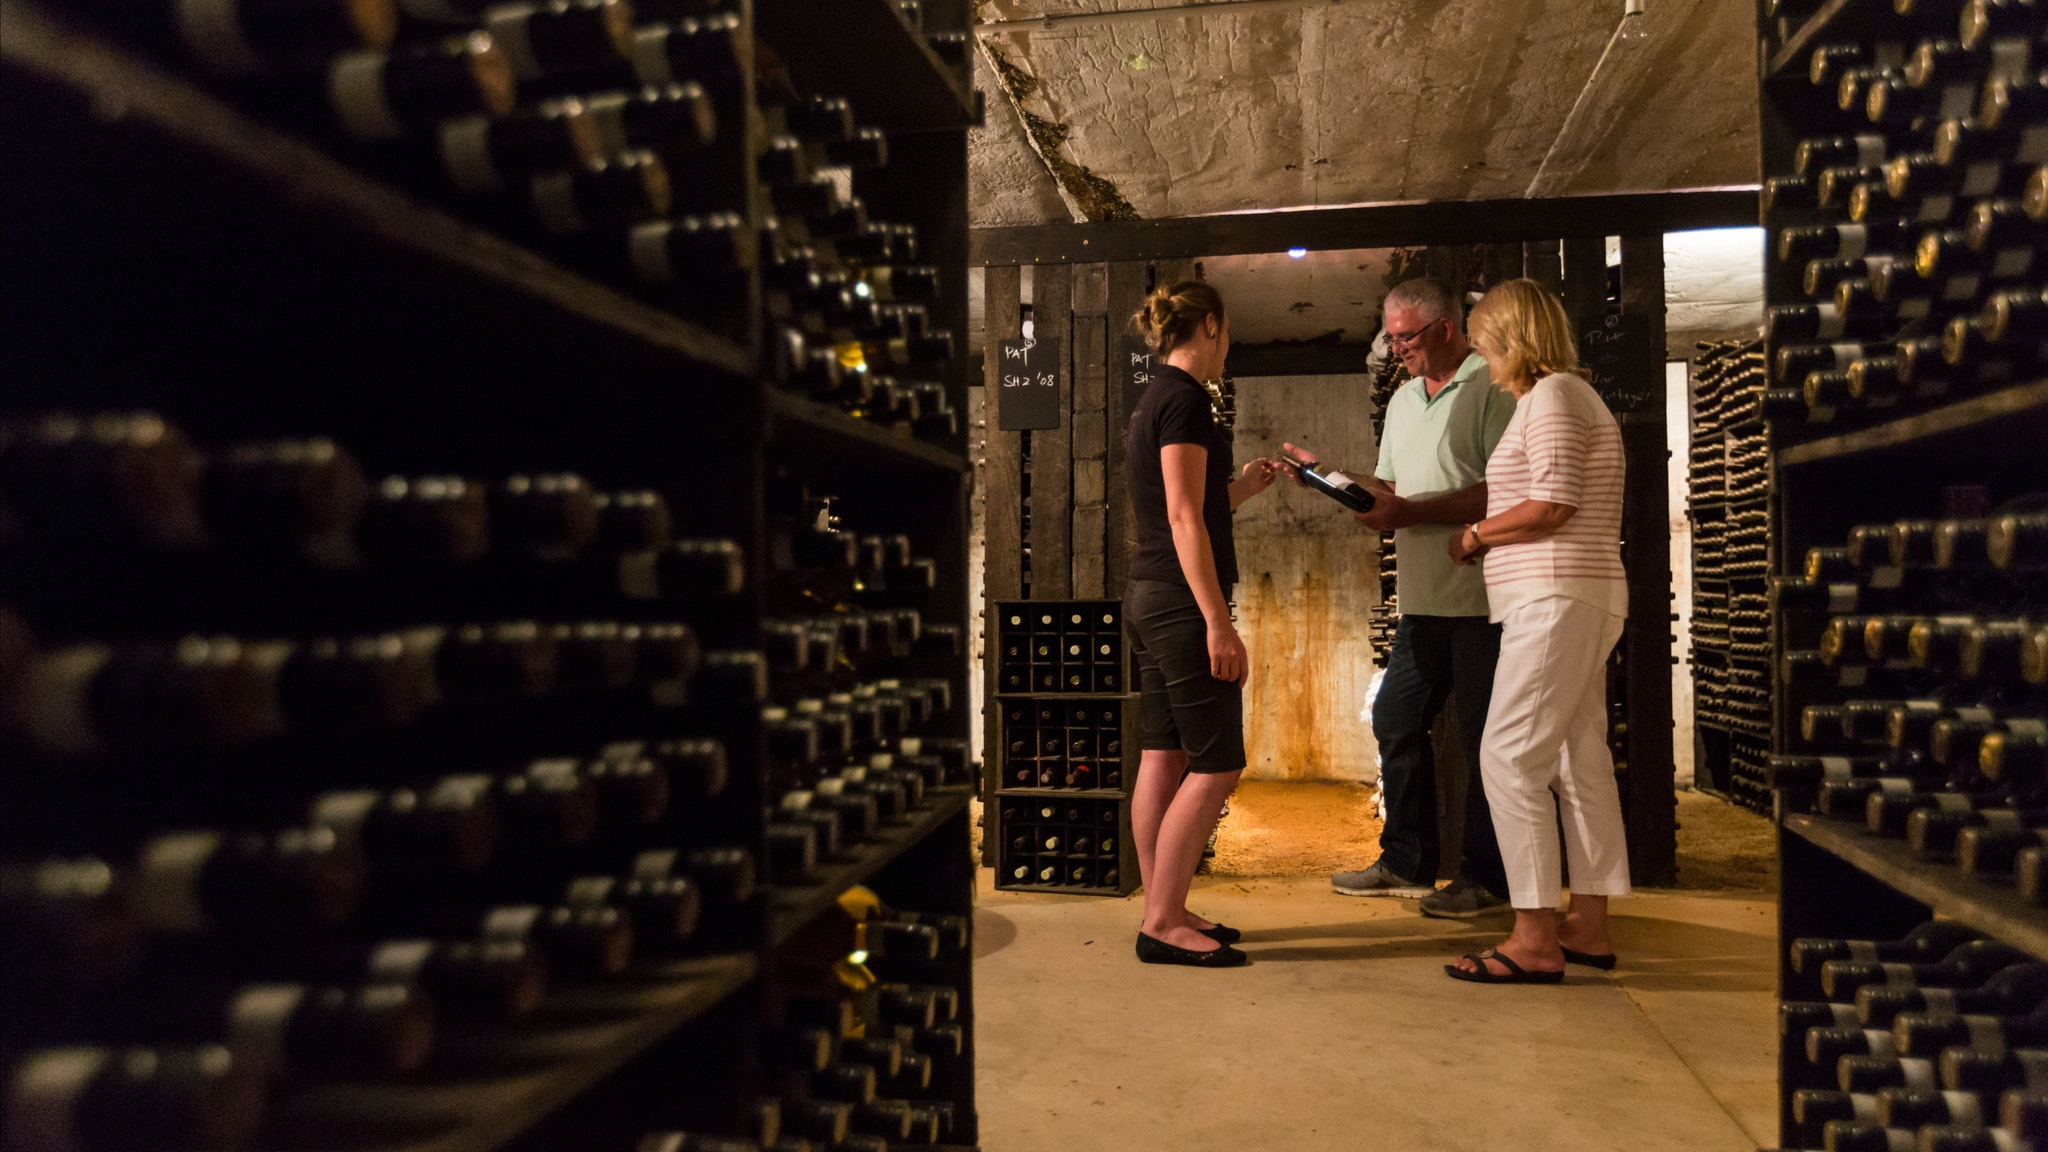 Family Cellar tour